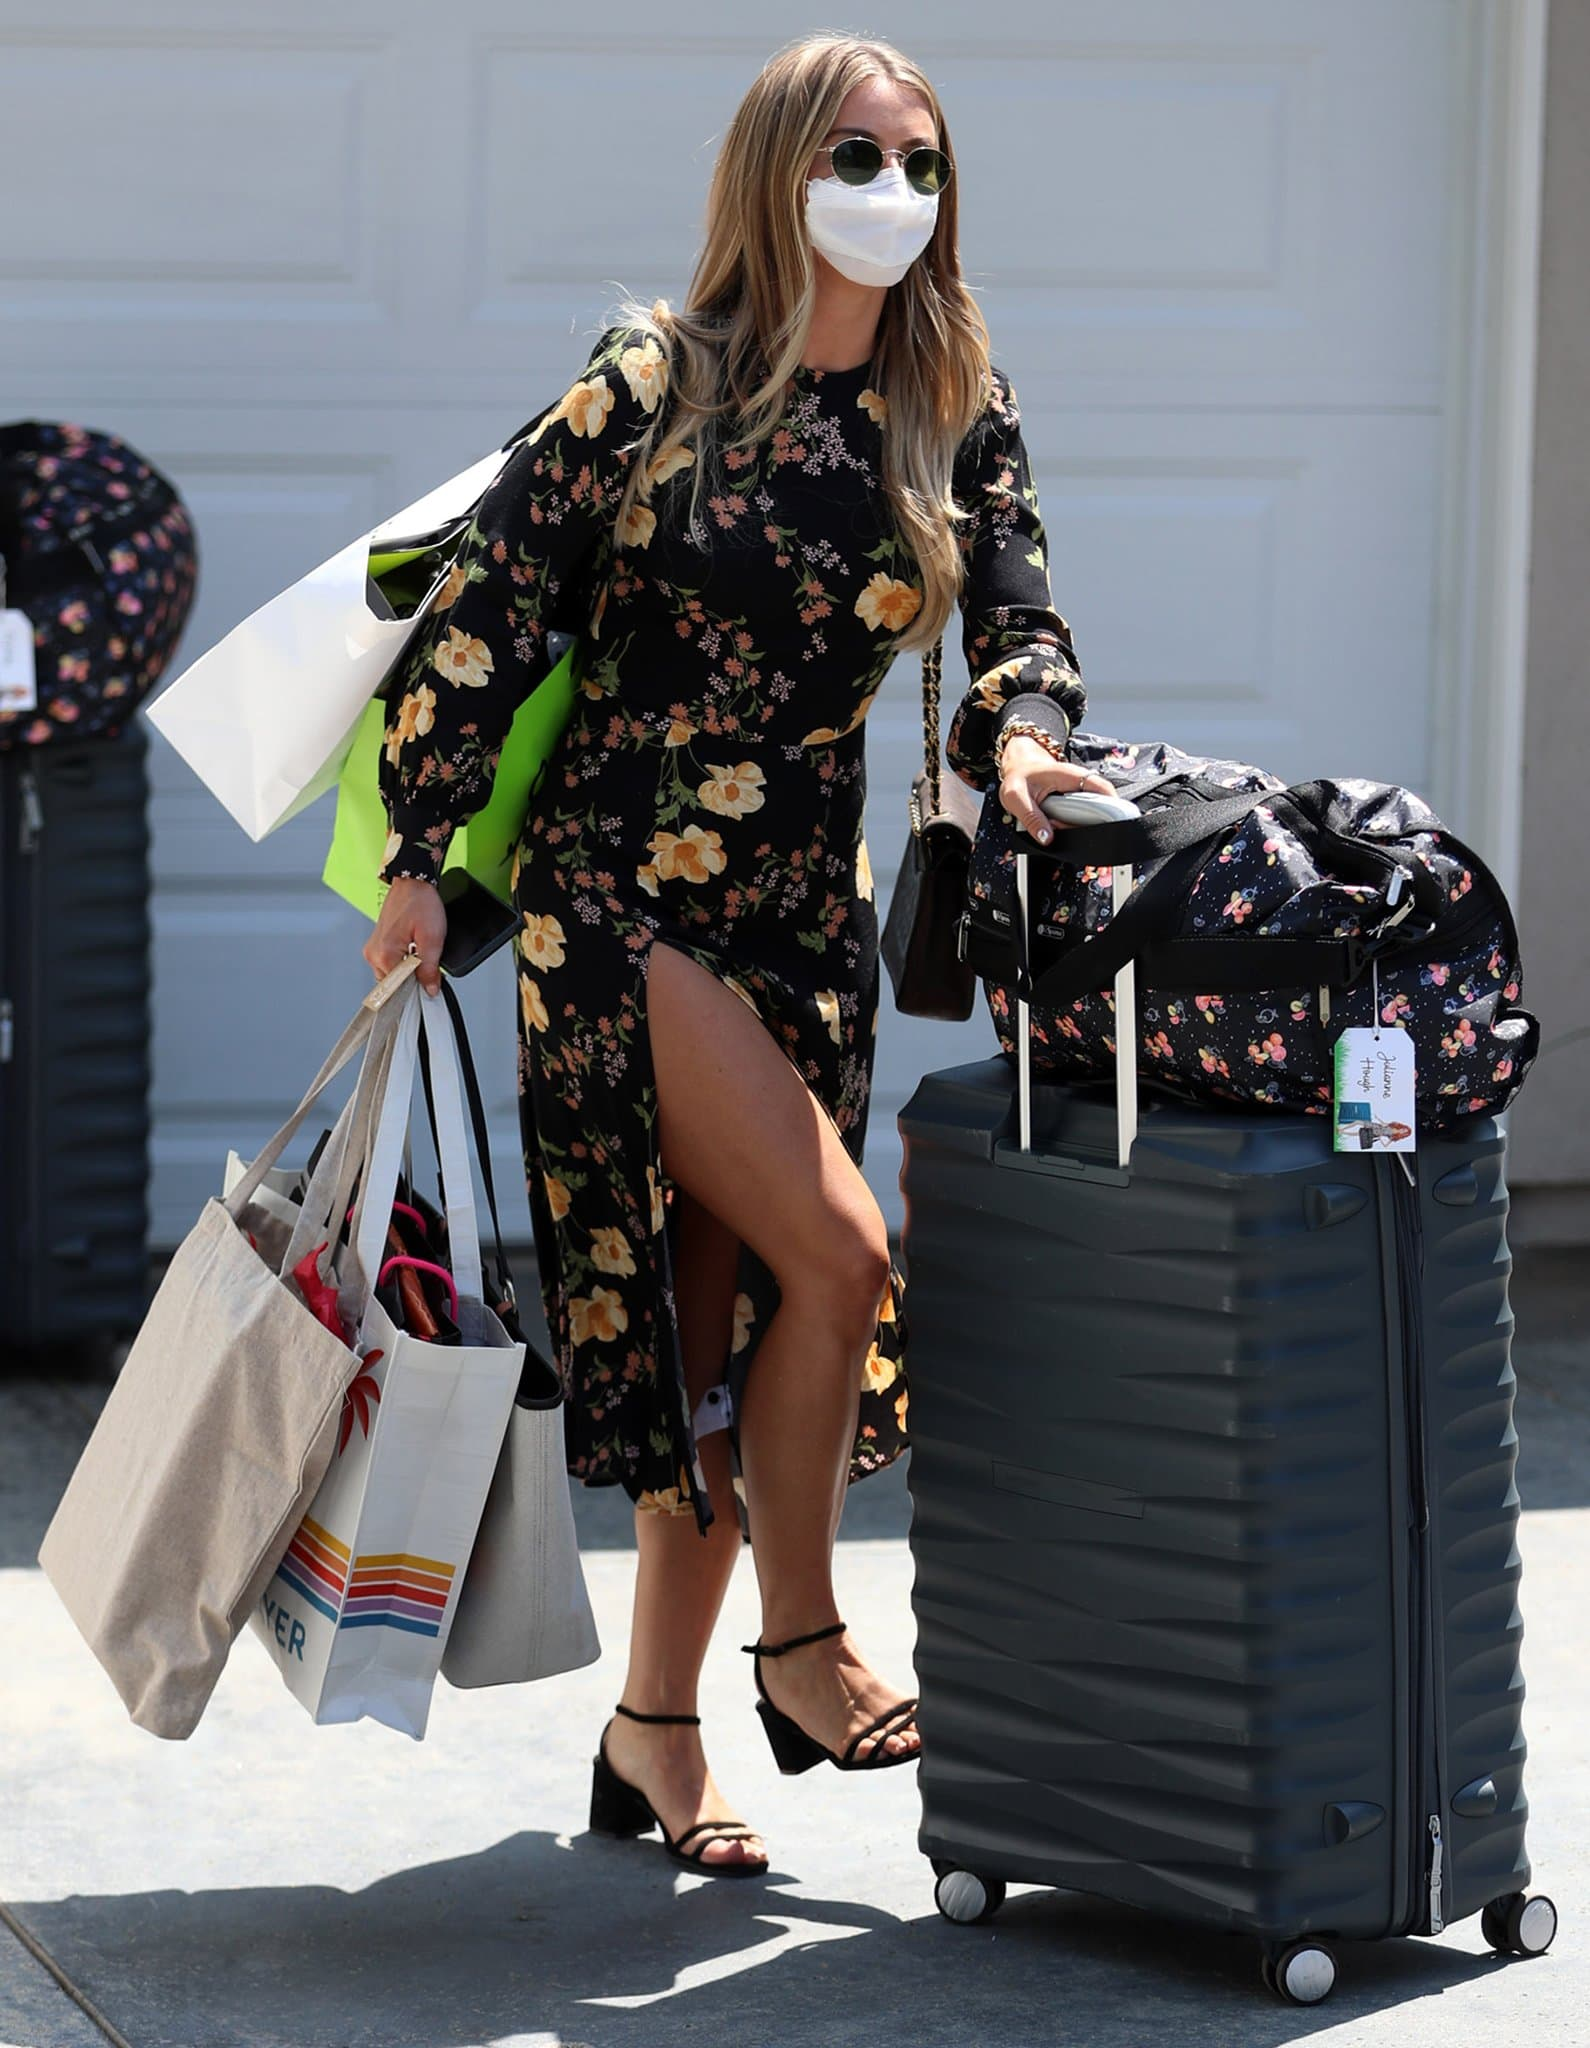 Julianne Hough flashes her legs as she leaves Jennifer Klein's home with bags full of goodies